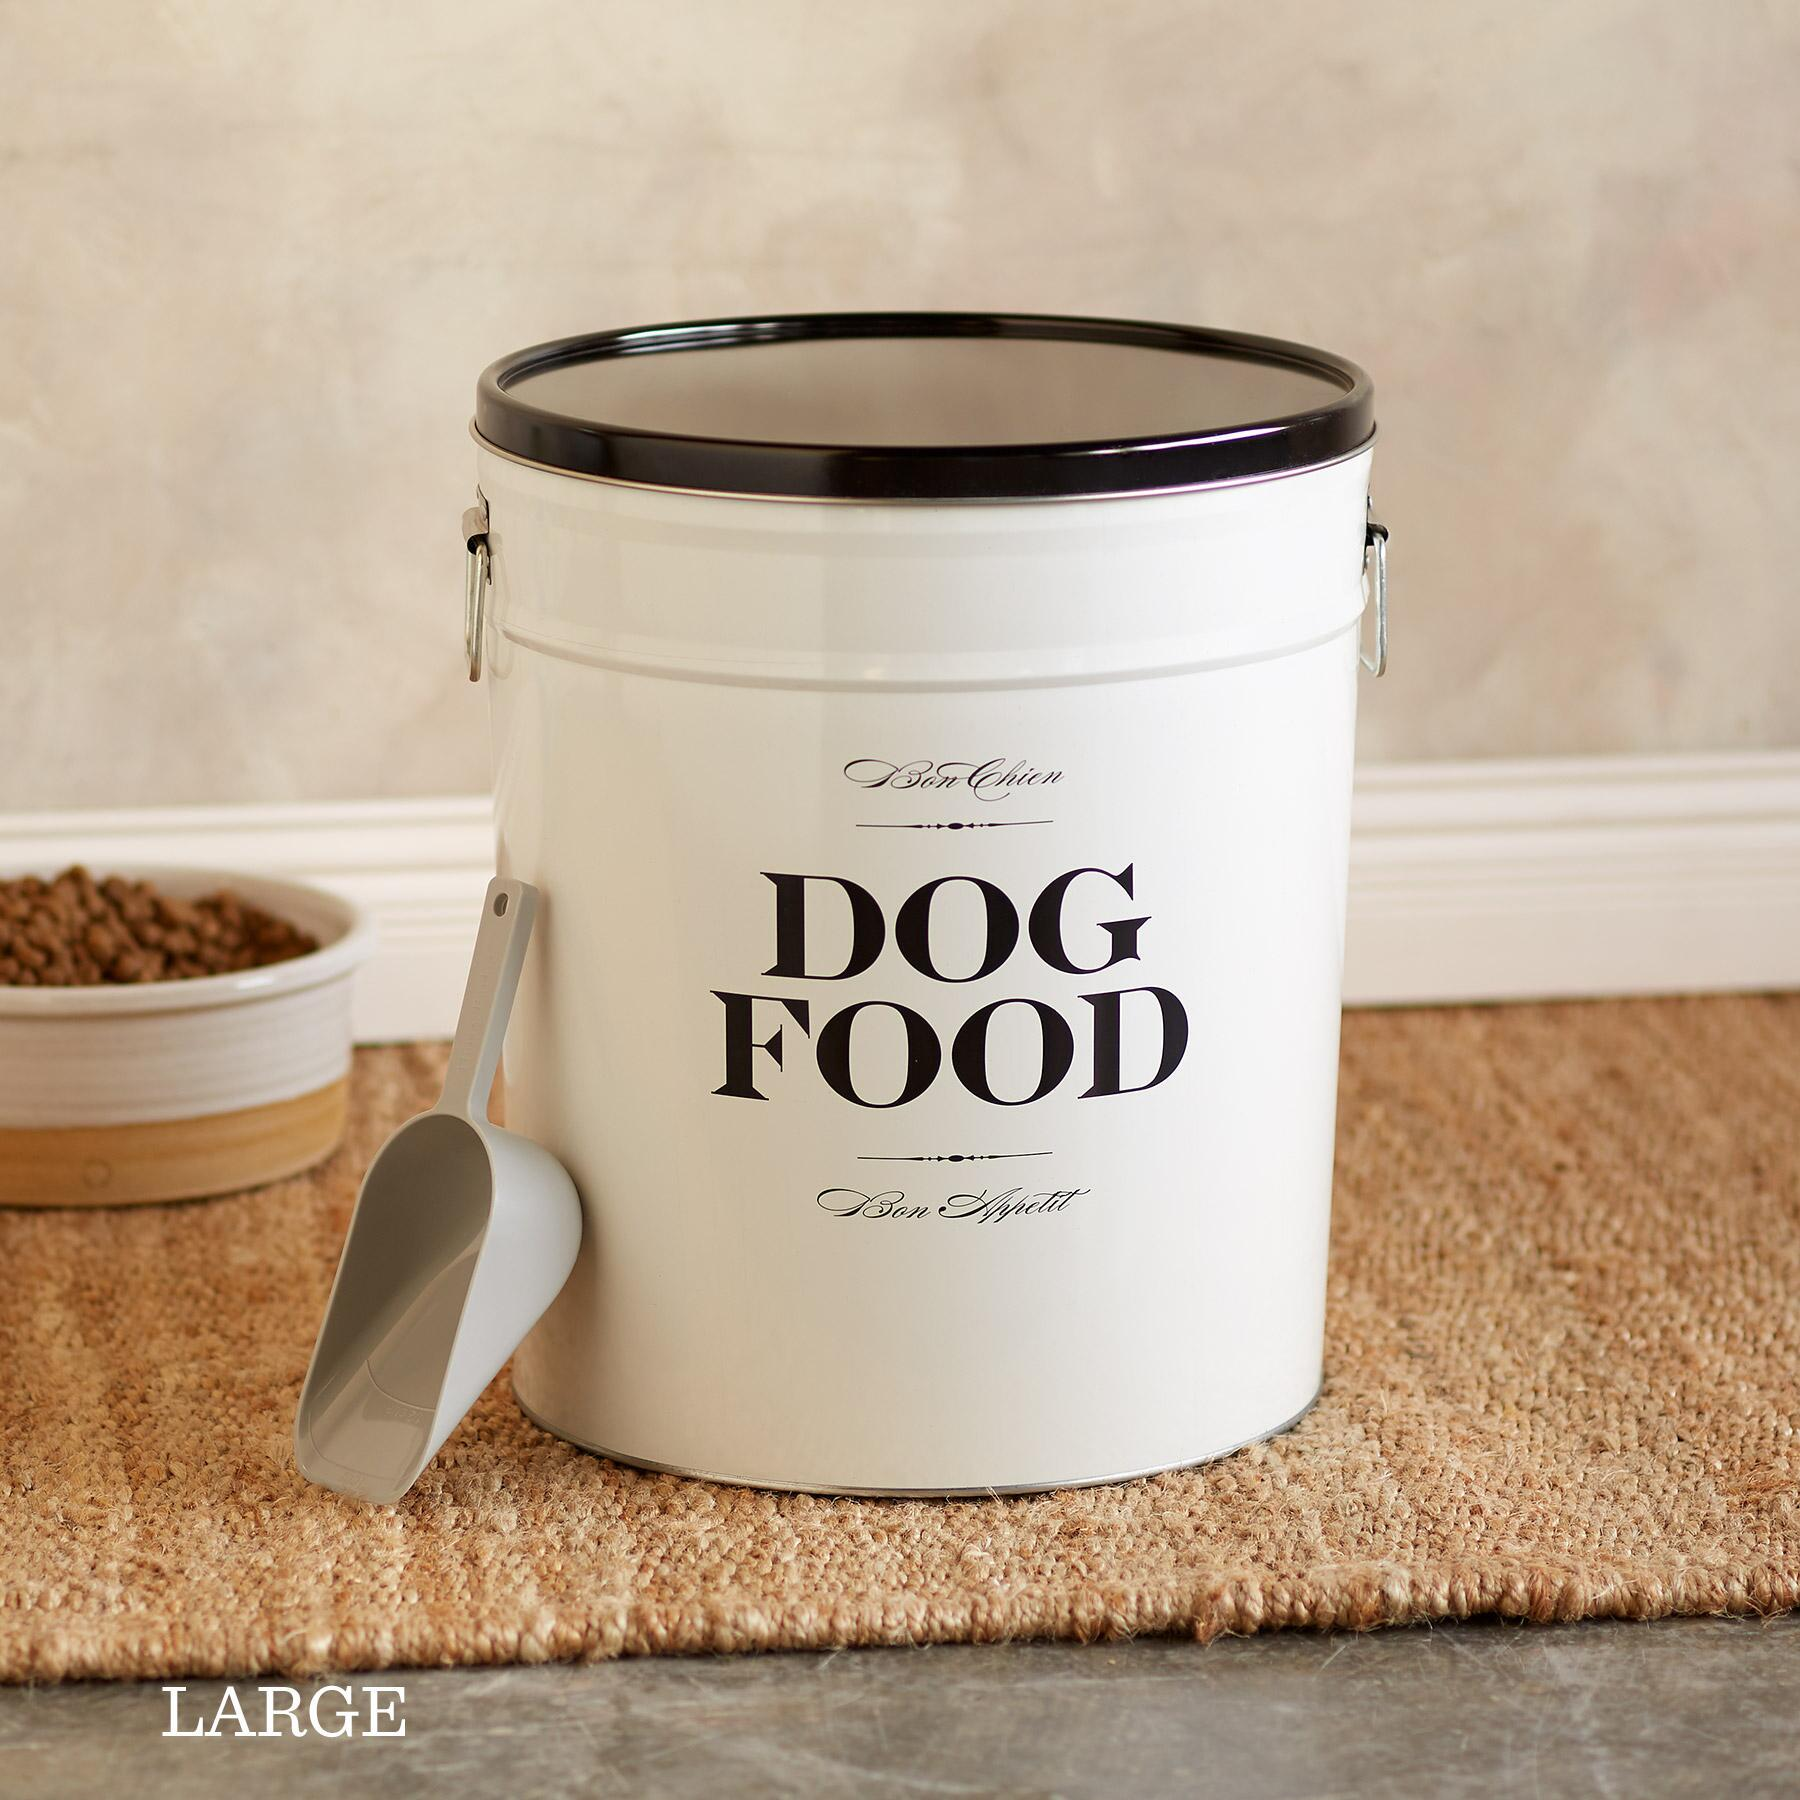 BON CHIEN DOG FOOD TIN: View 3